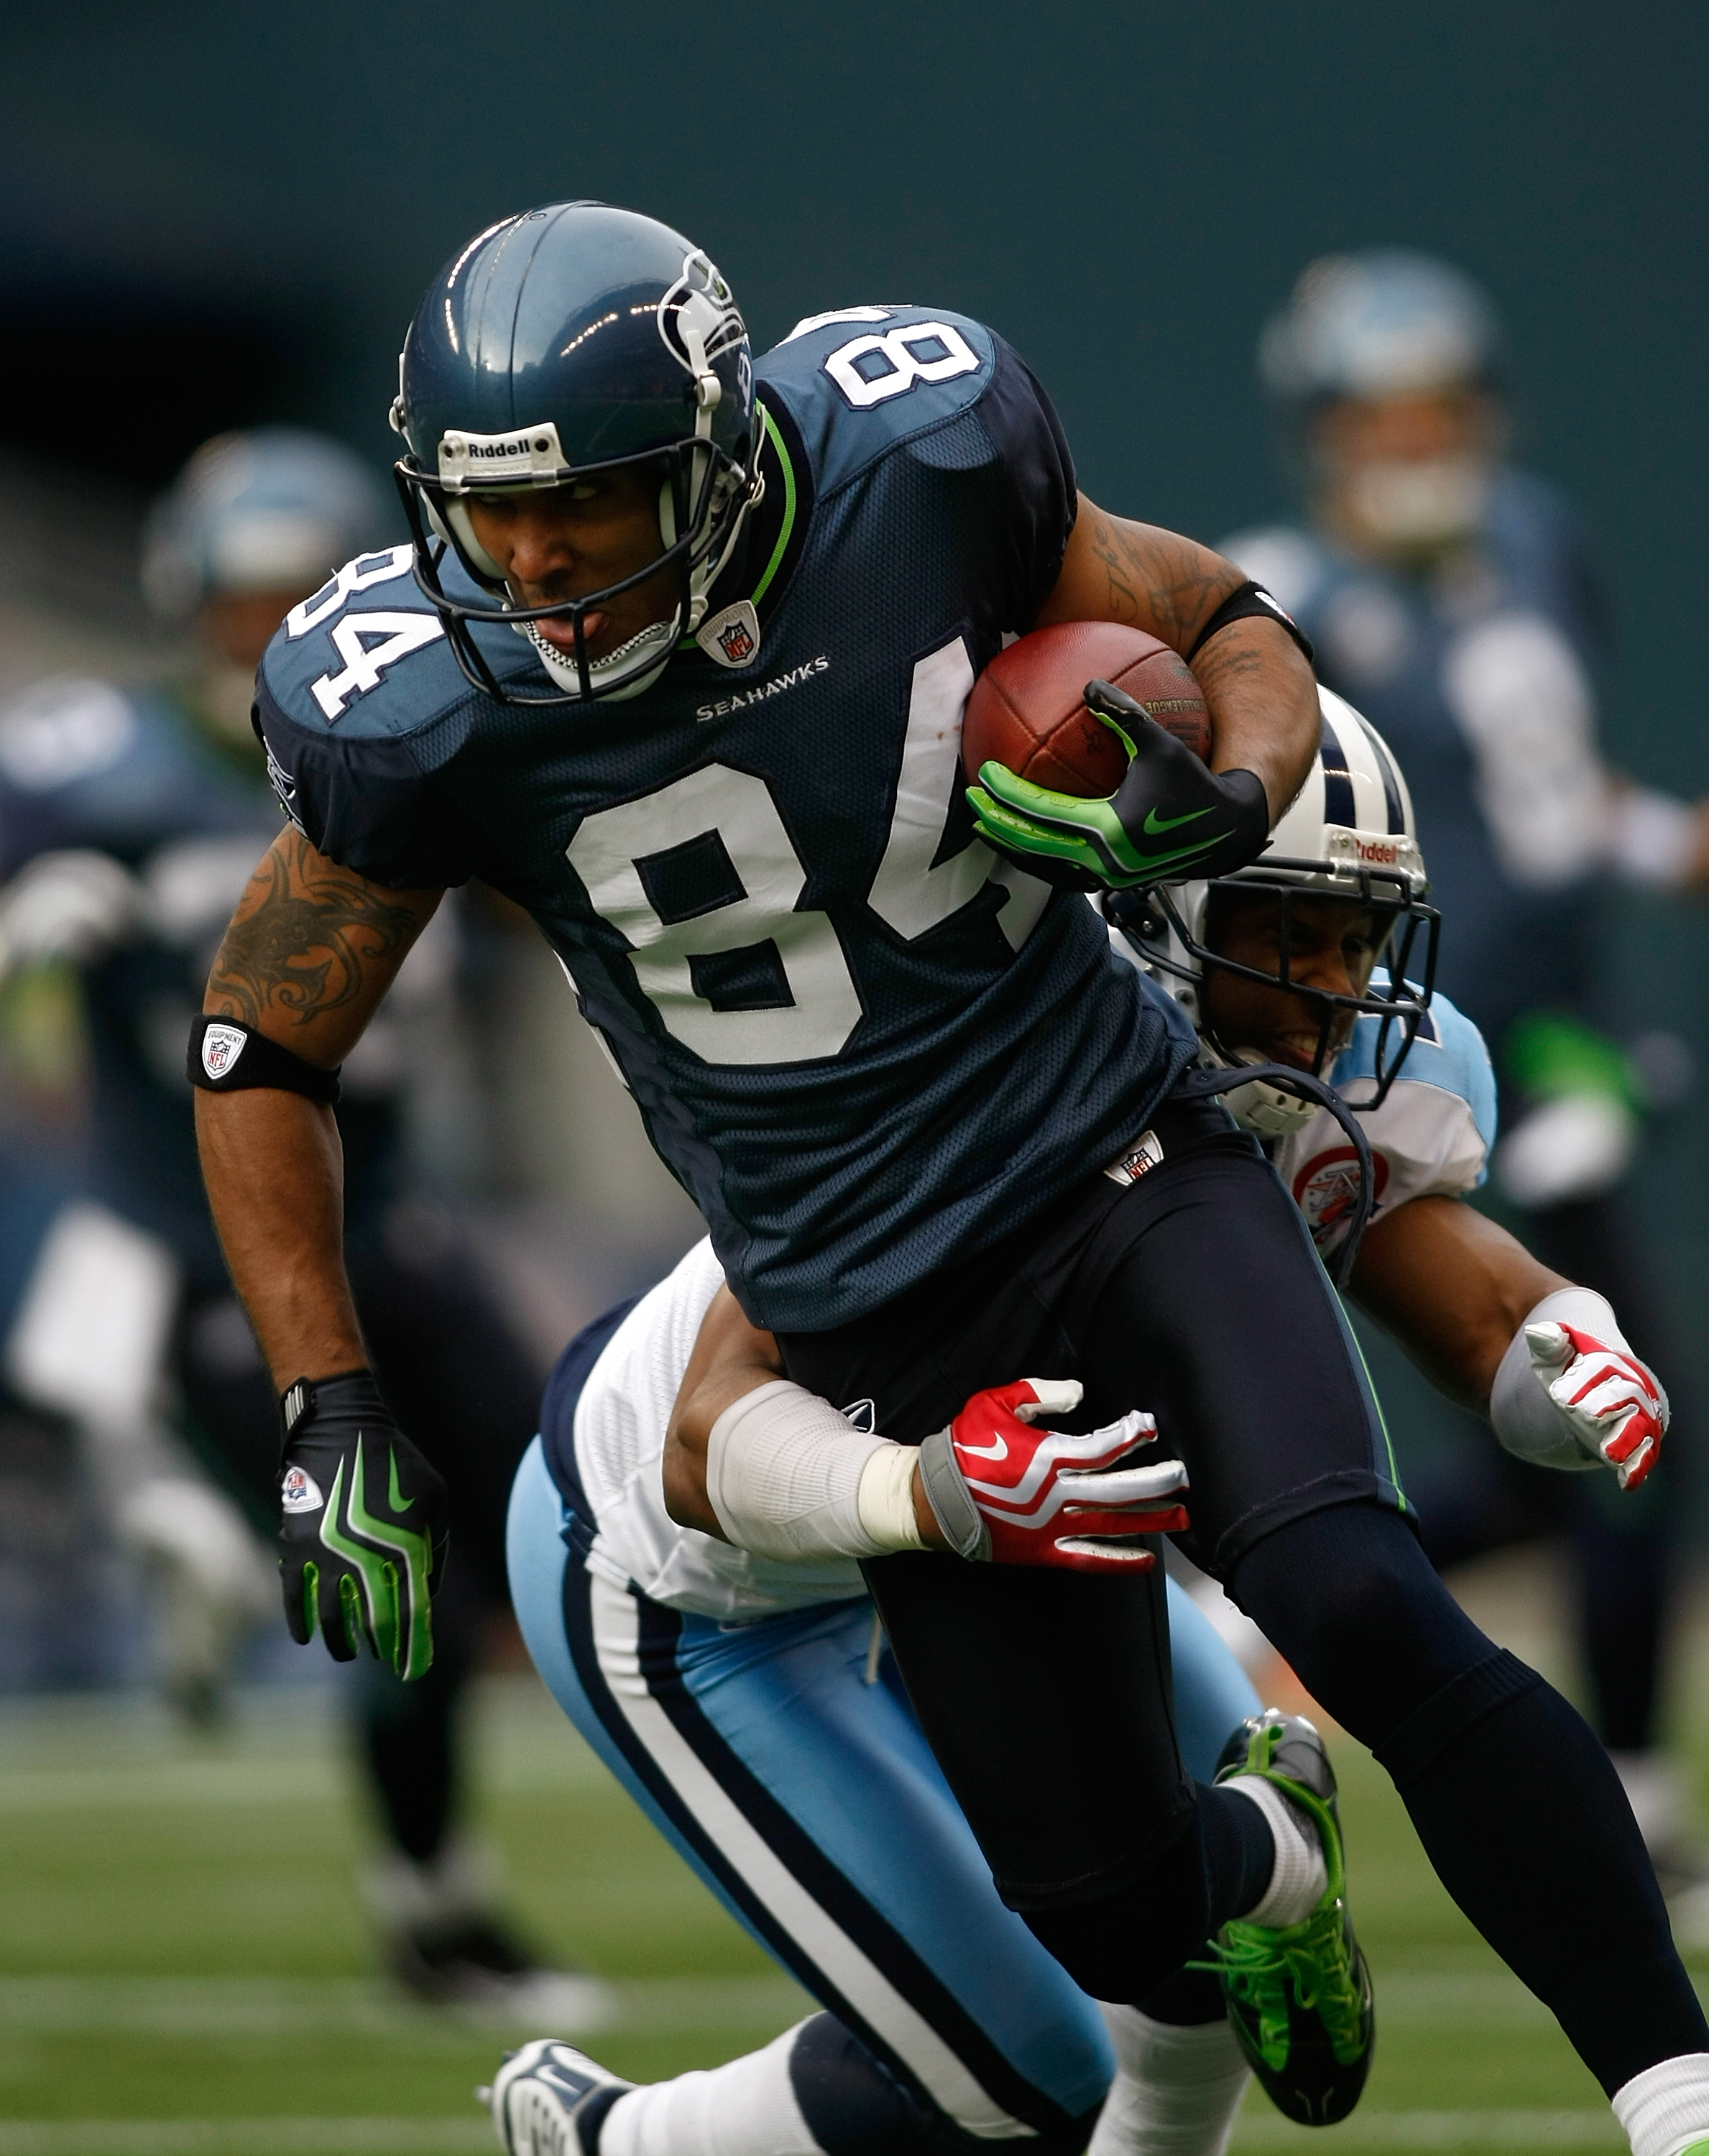 Madden NFL 11 Ratings: Seattle Seahawks | Bleacher Report | Latest